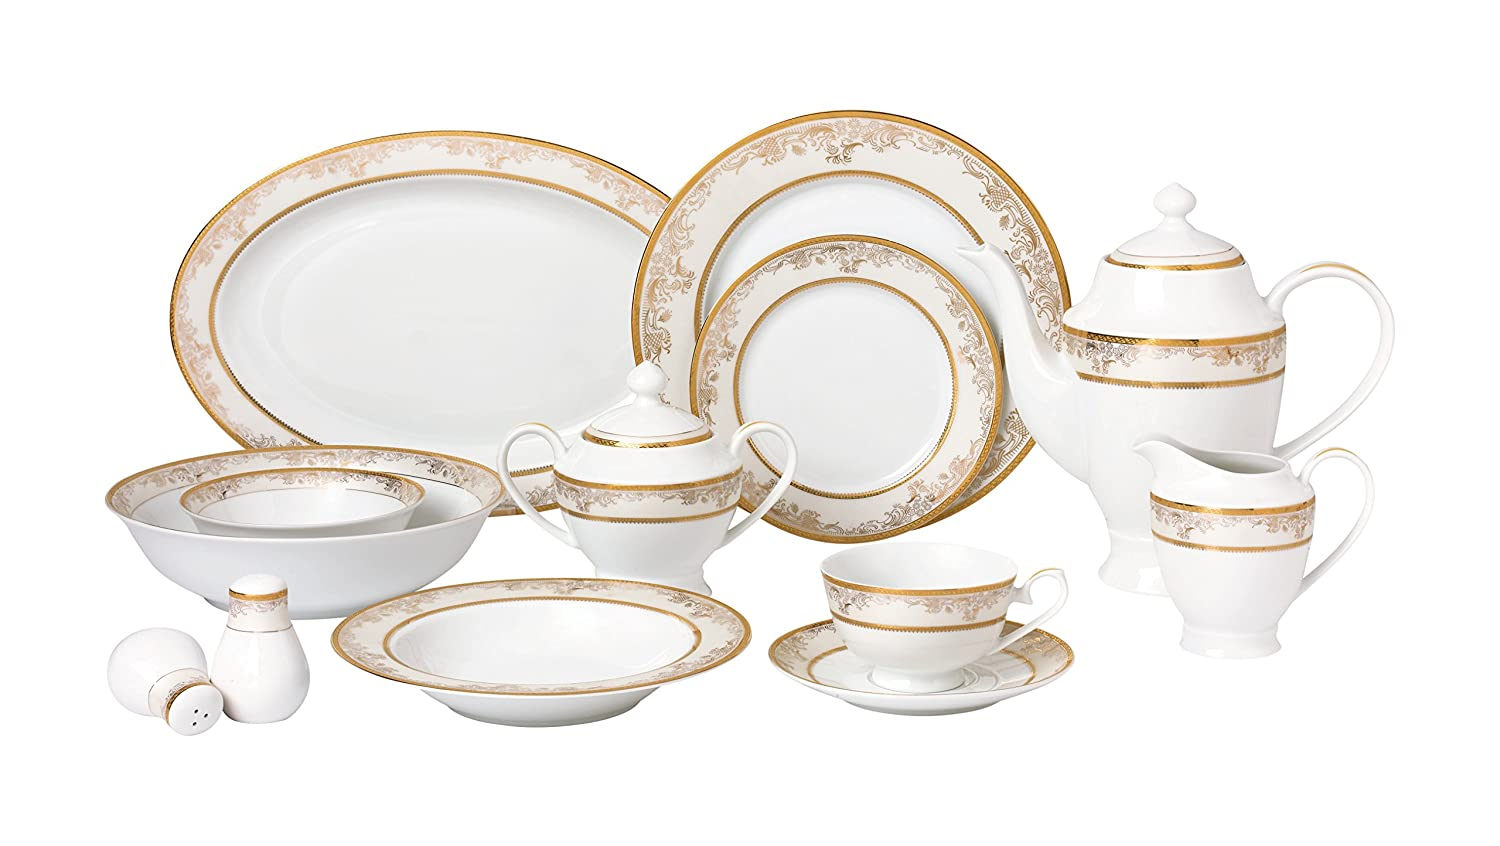 Chloe Gold and White Bone China 57-Piece Dinnerware Set Service for 8